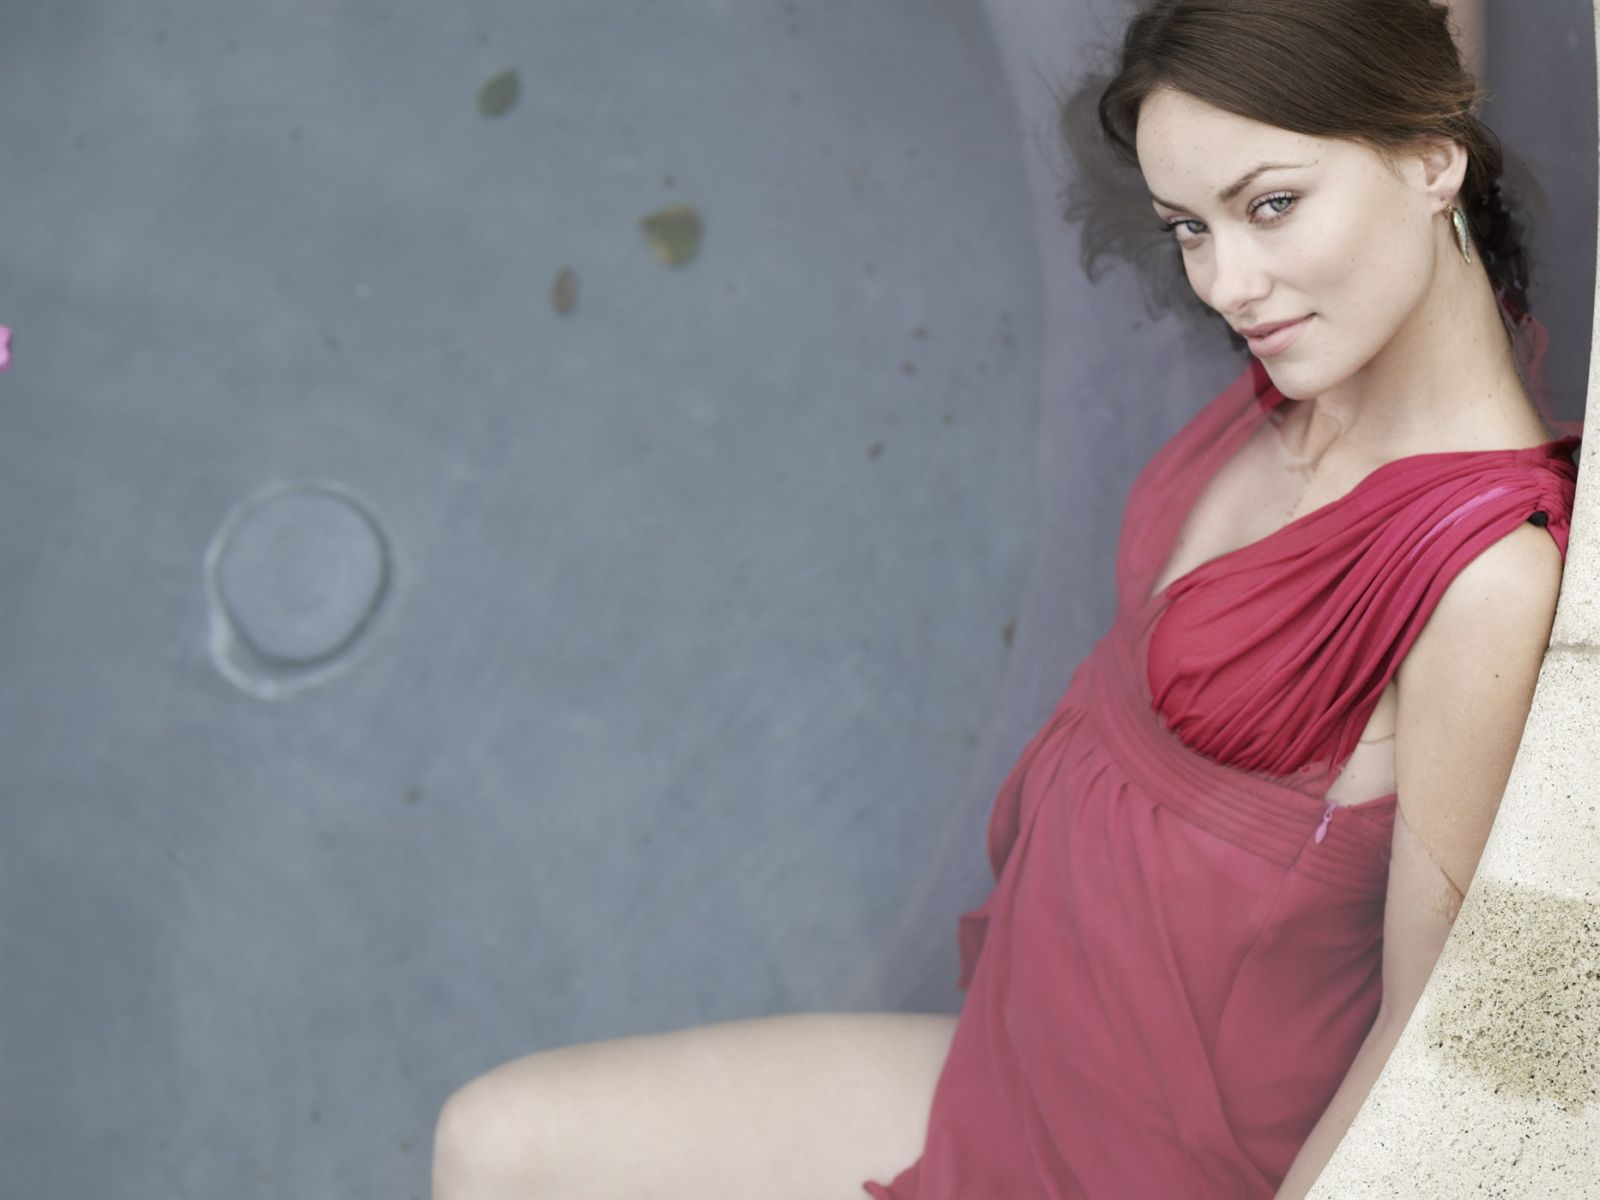 olivia_wilde_wallpaper_011